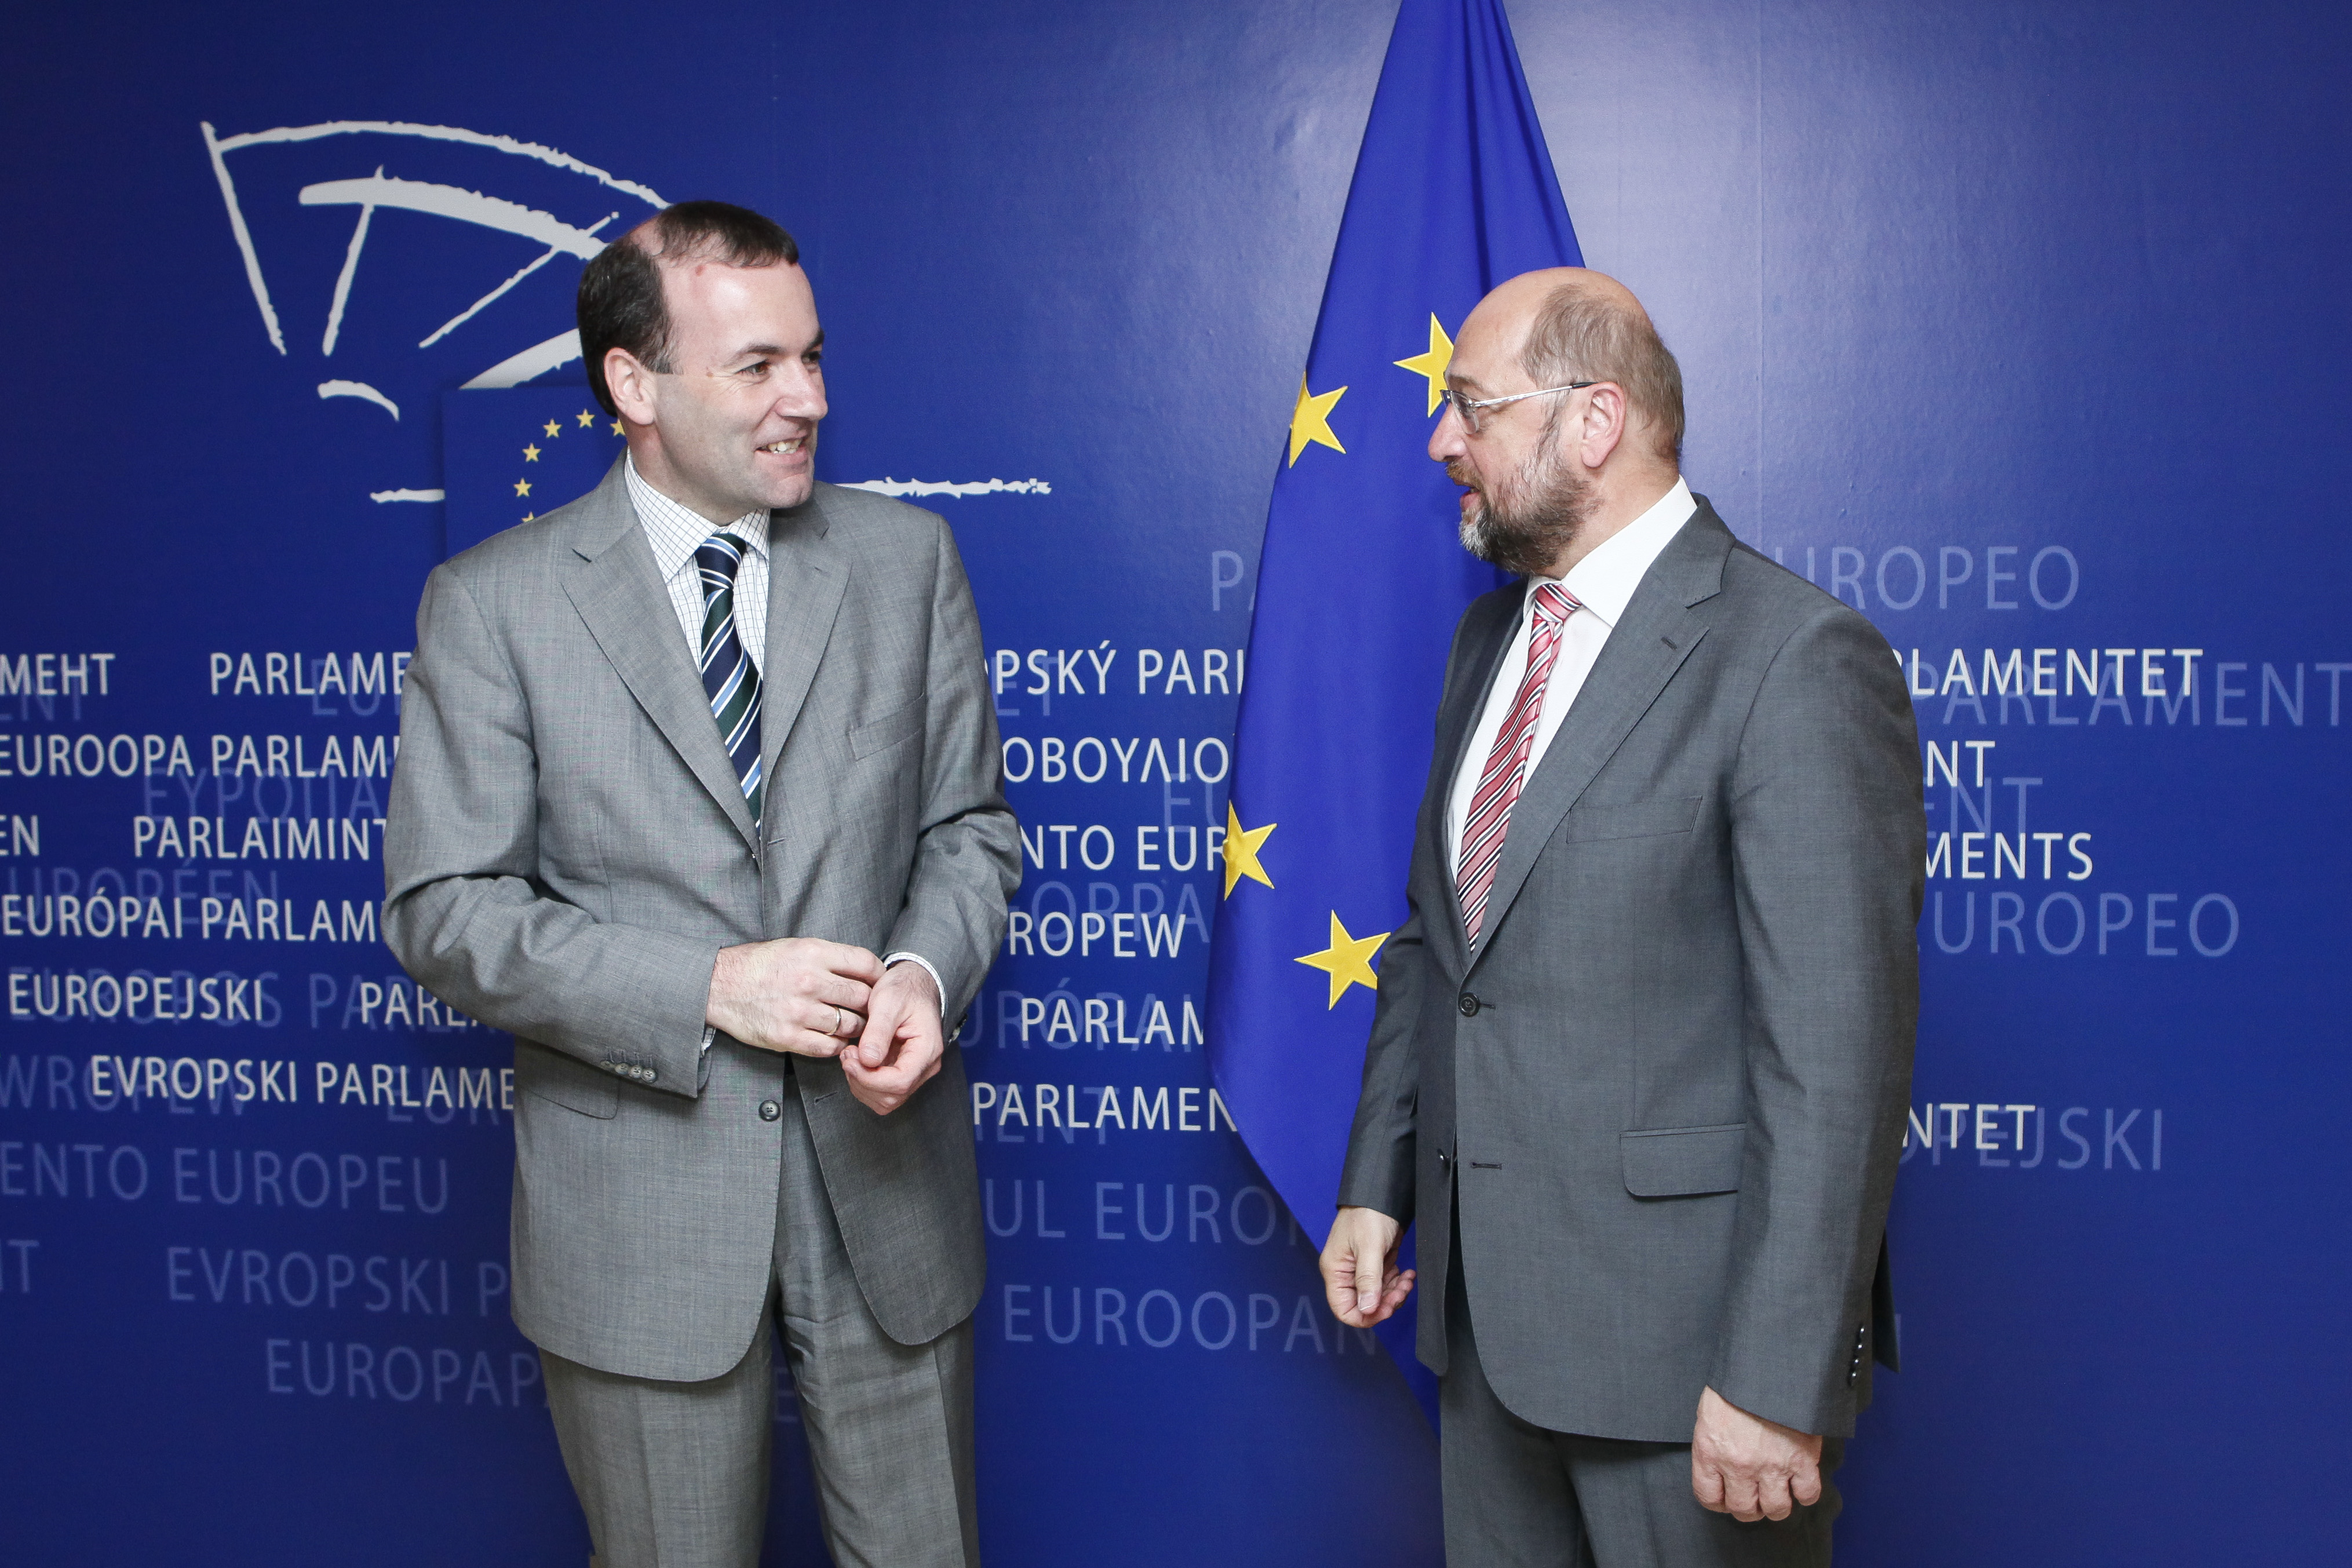 Manfred Weber (EPP, centre-right) and Martin Schulz (S&D, socialist) [European Parliament]